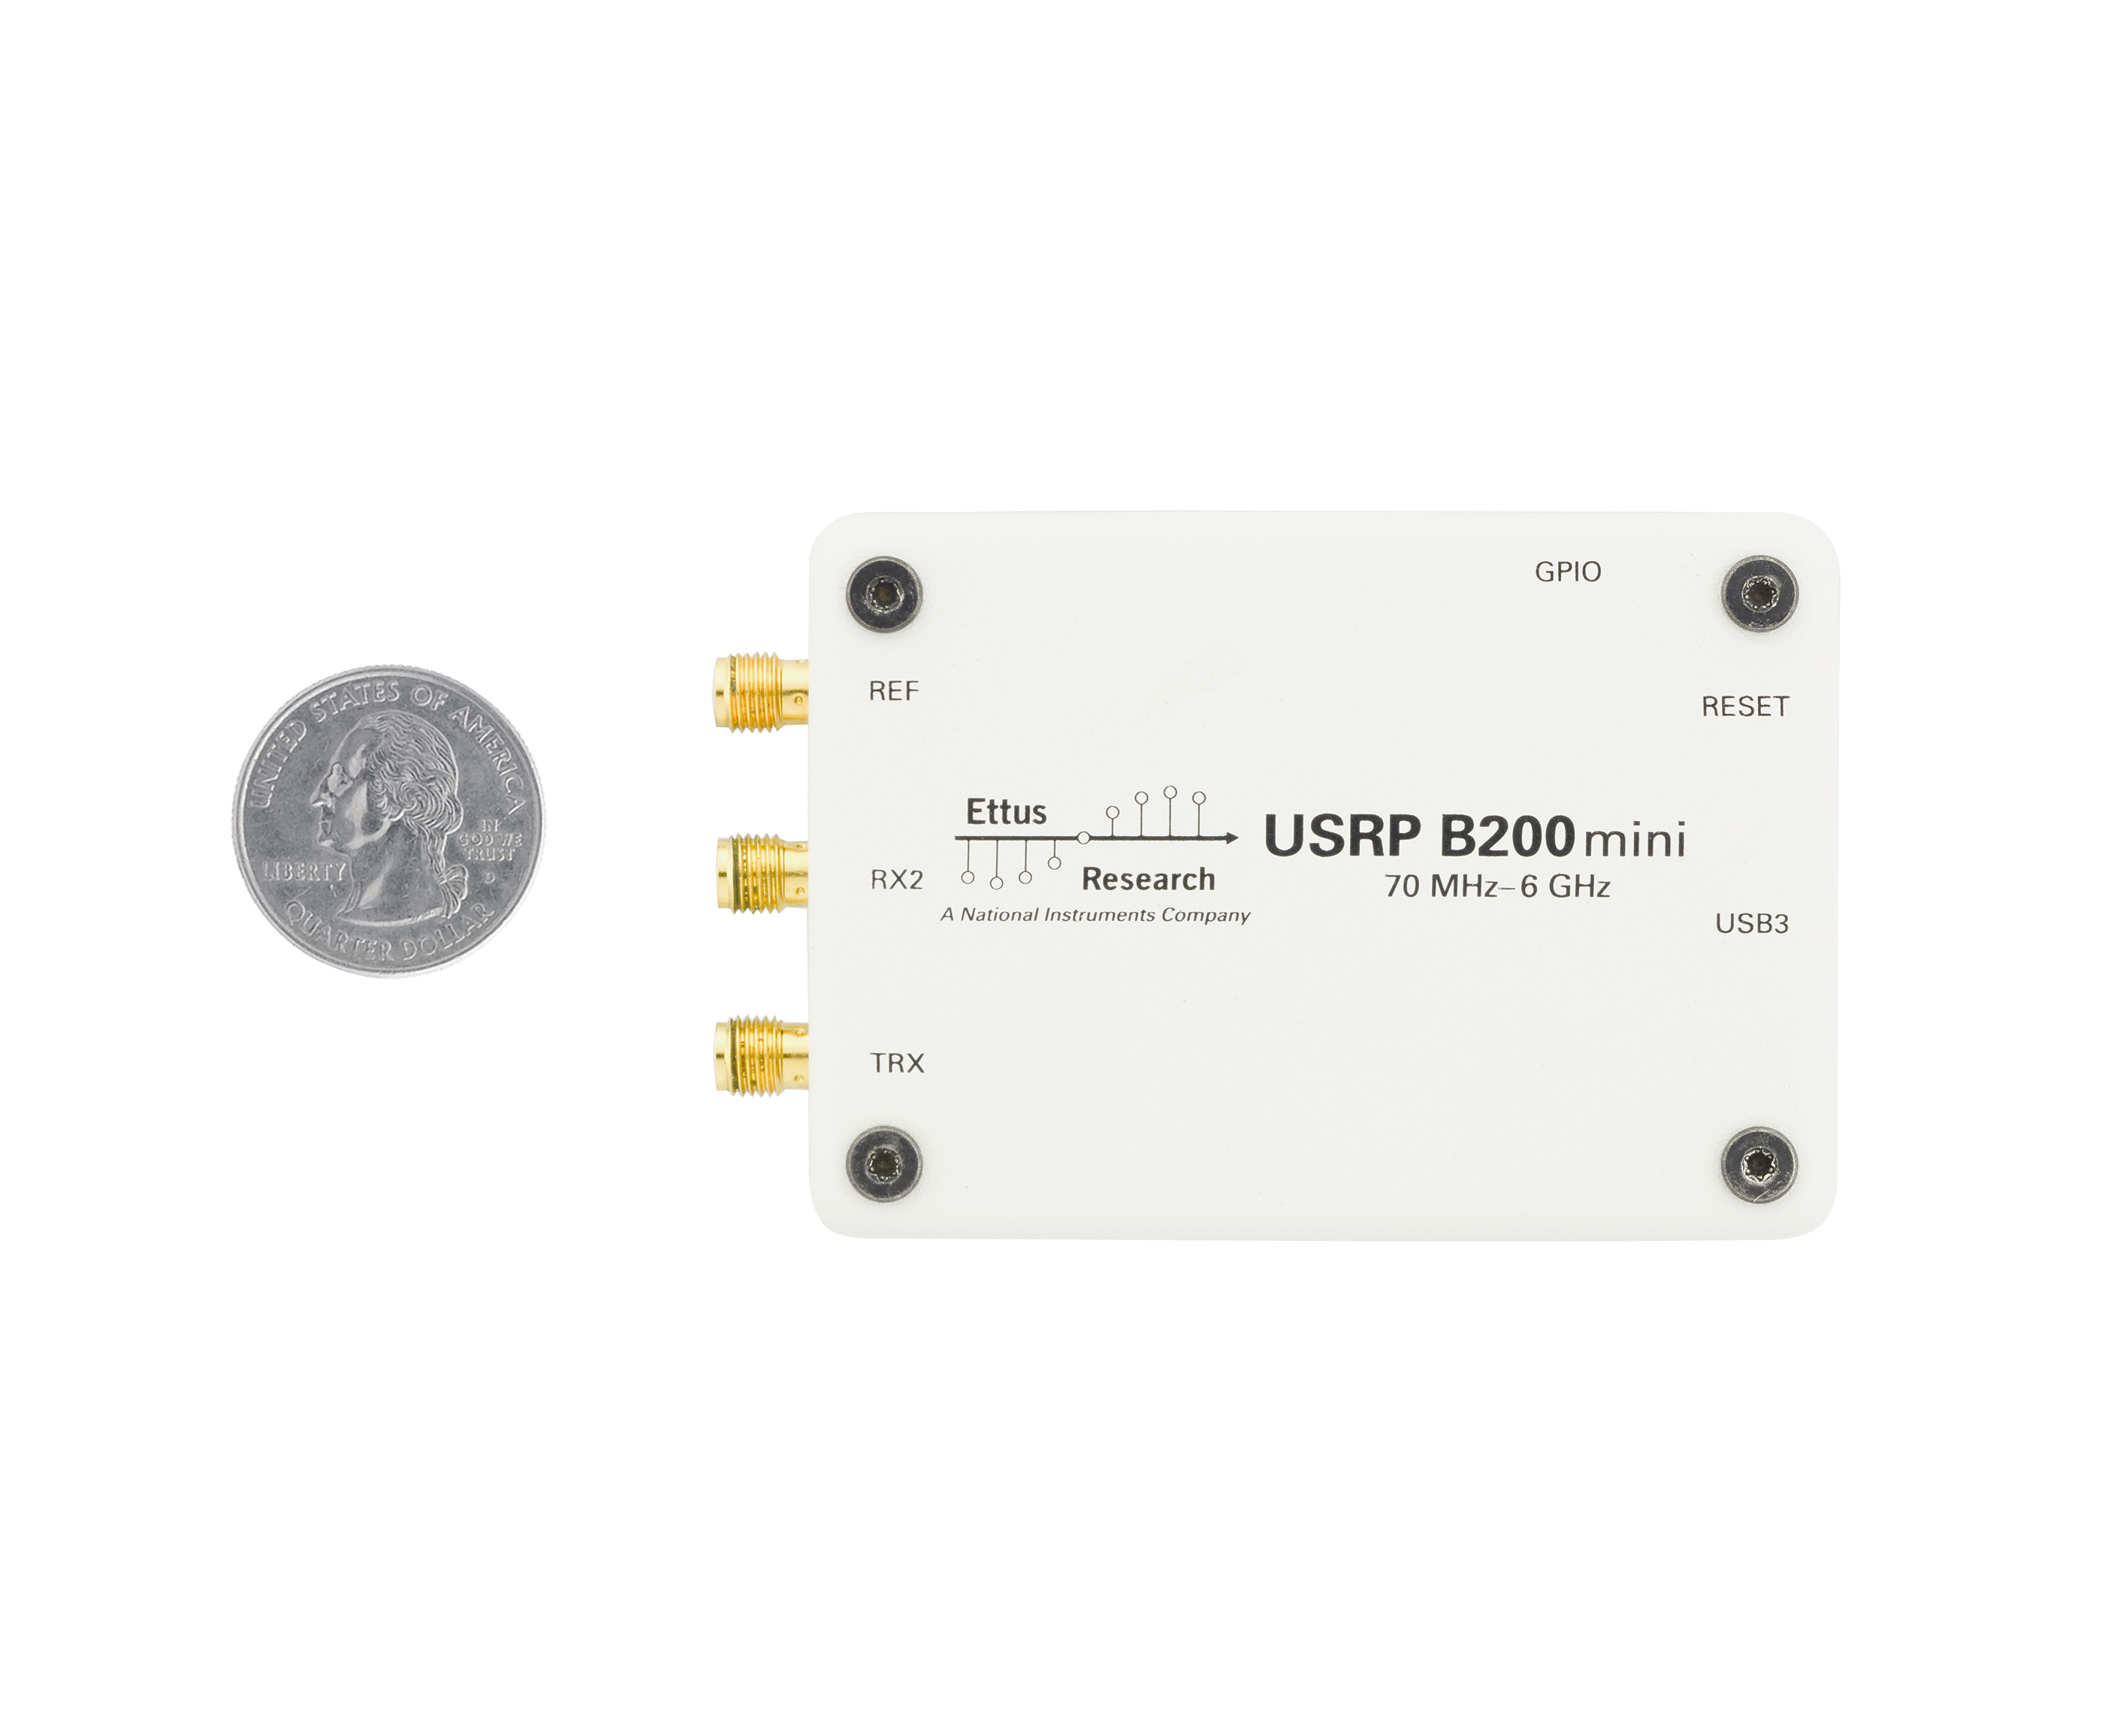 USRP B200mini-i | Ettus Research, a National Instruments Brand | The